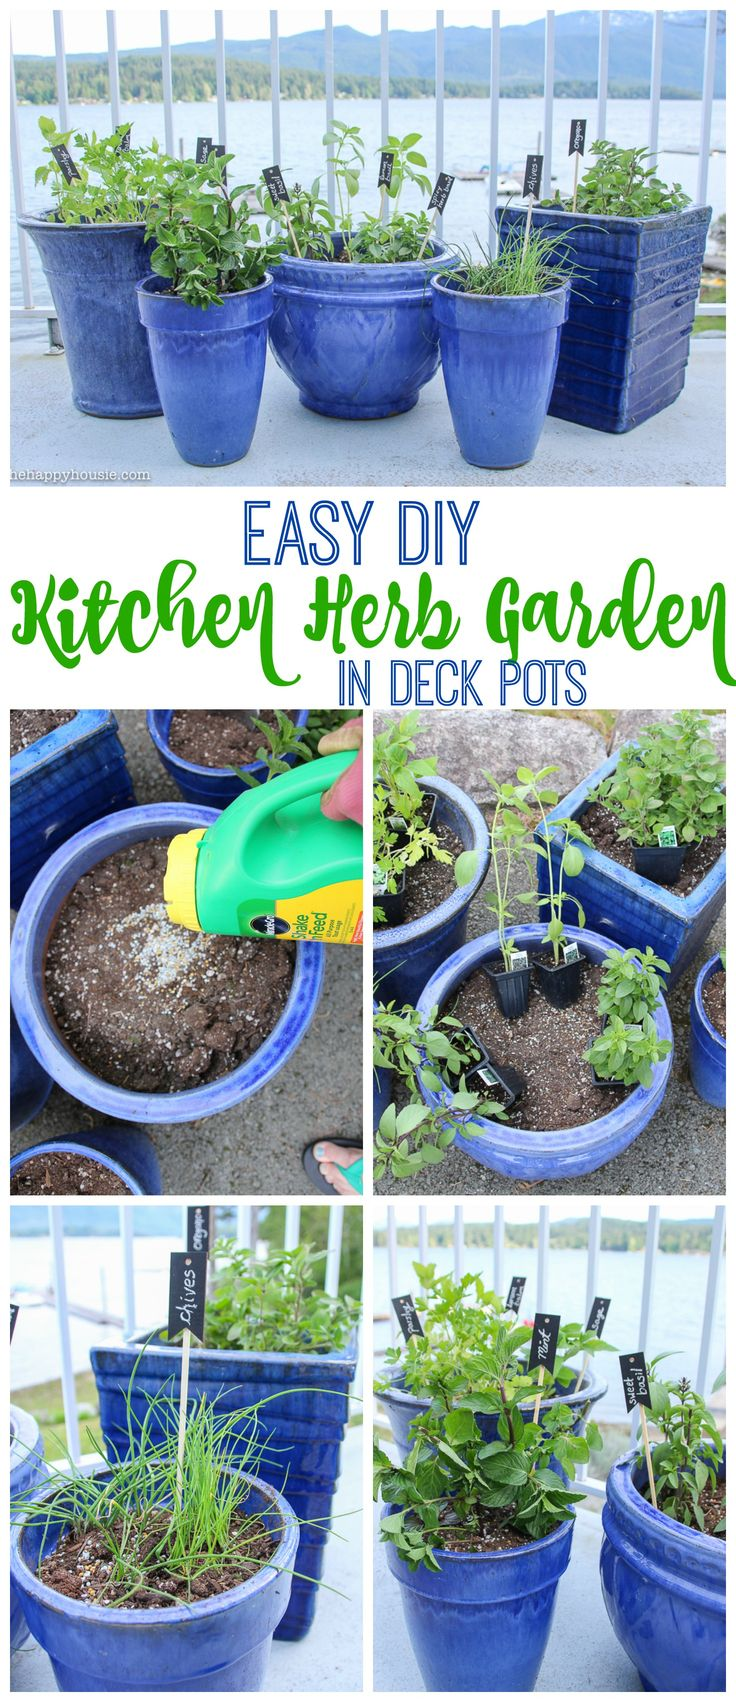 Indoor Kitchen Herb Garden Kit 1000 Ideas About Kitchen Herb Gardens On Pinterest Herb Garden